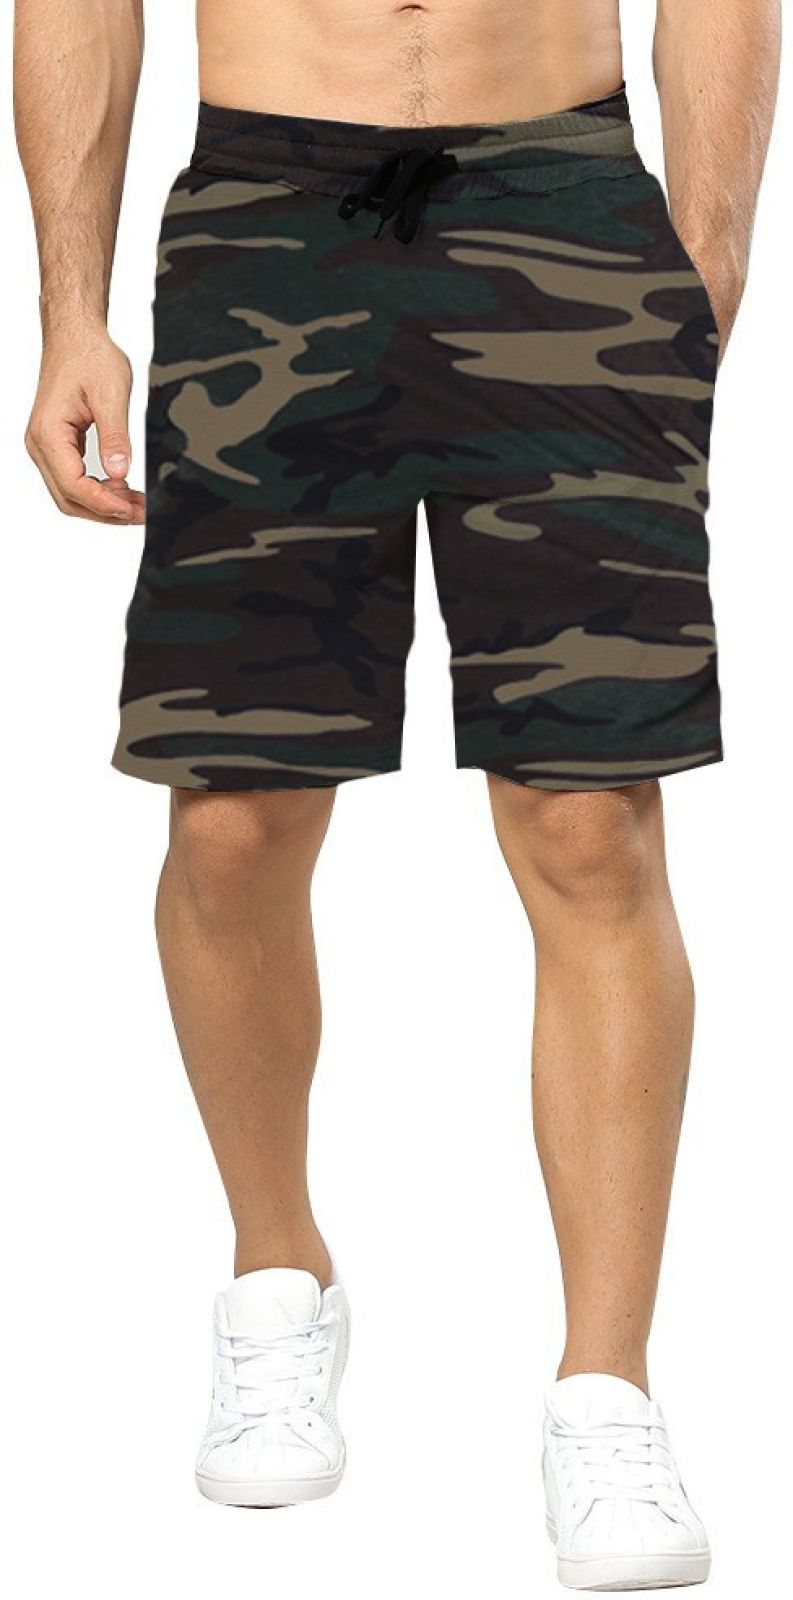 Tripr Printed Men Multicolor Regular Shorts